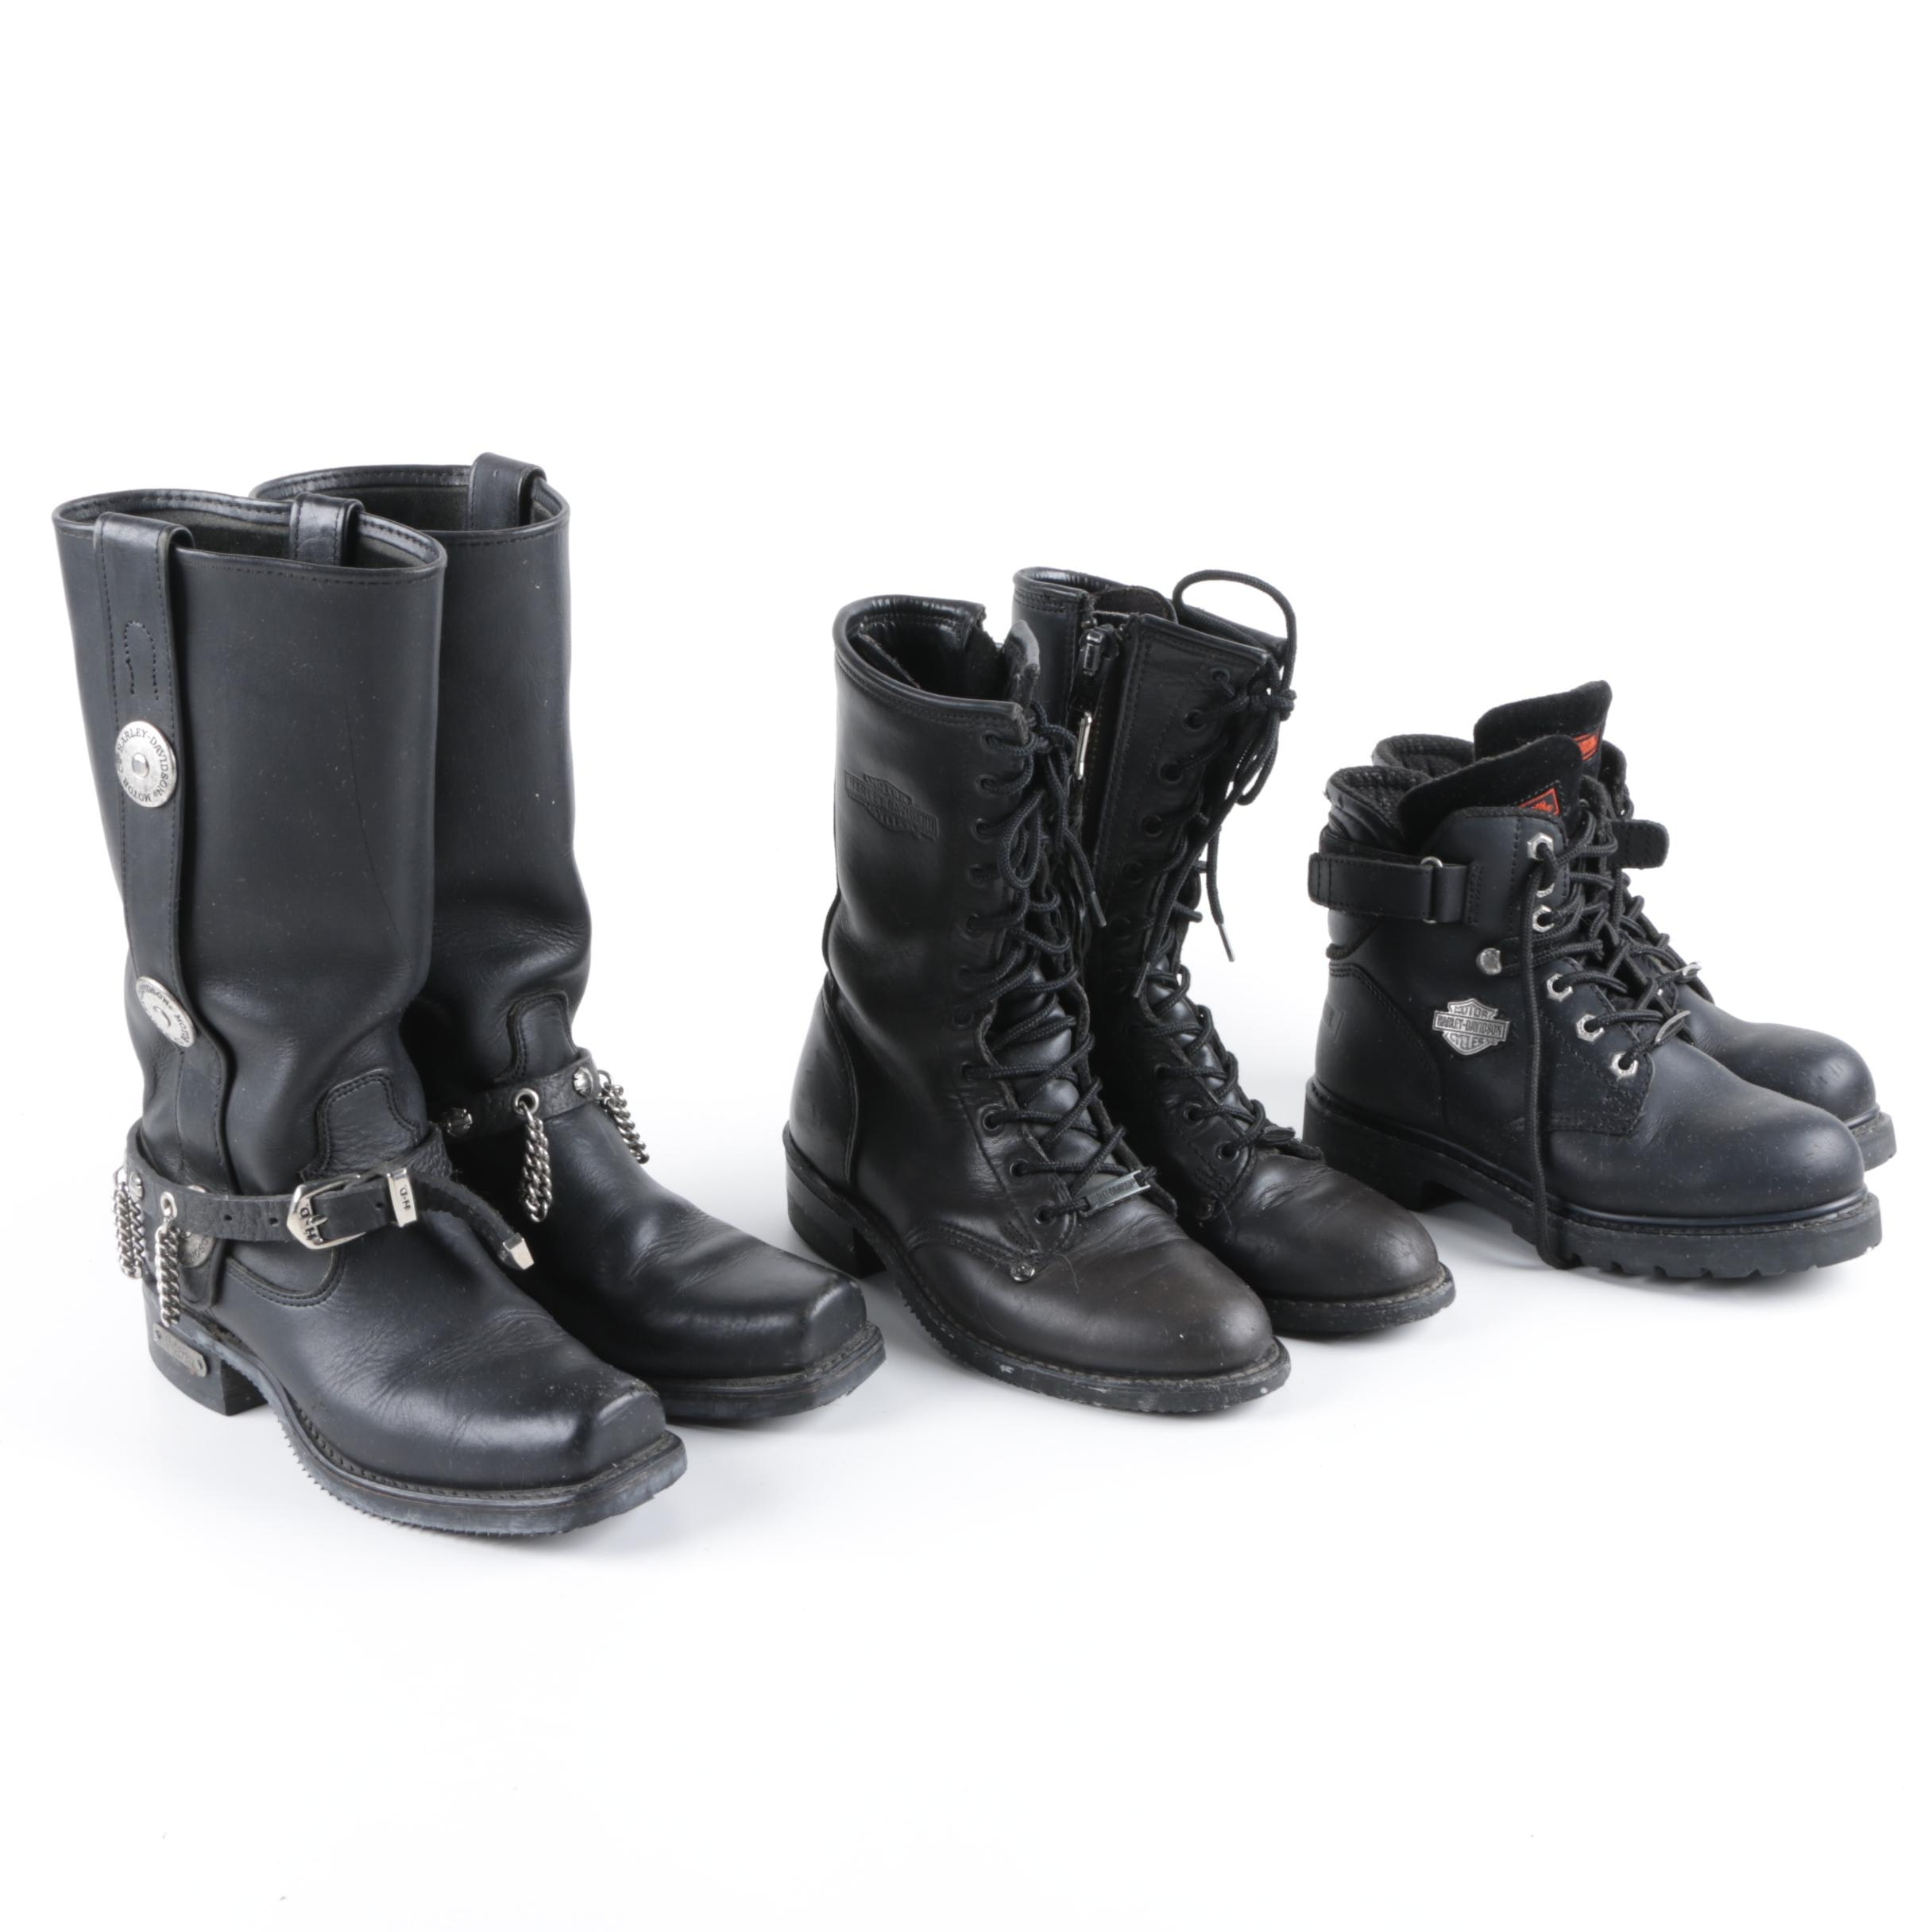 Women's Harley-Davidson Black Leather Motorcycle Boots